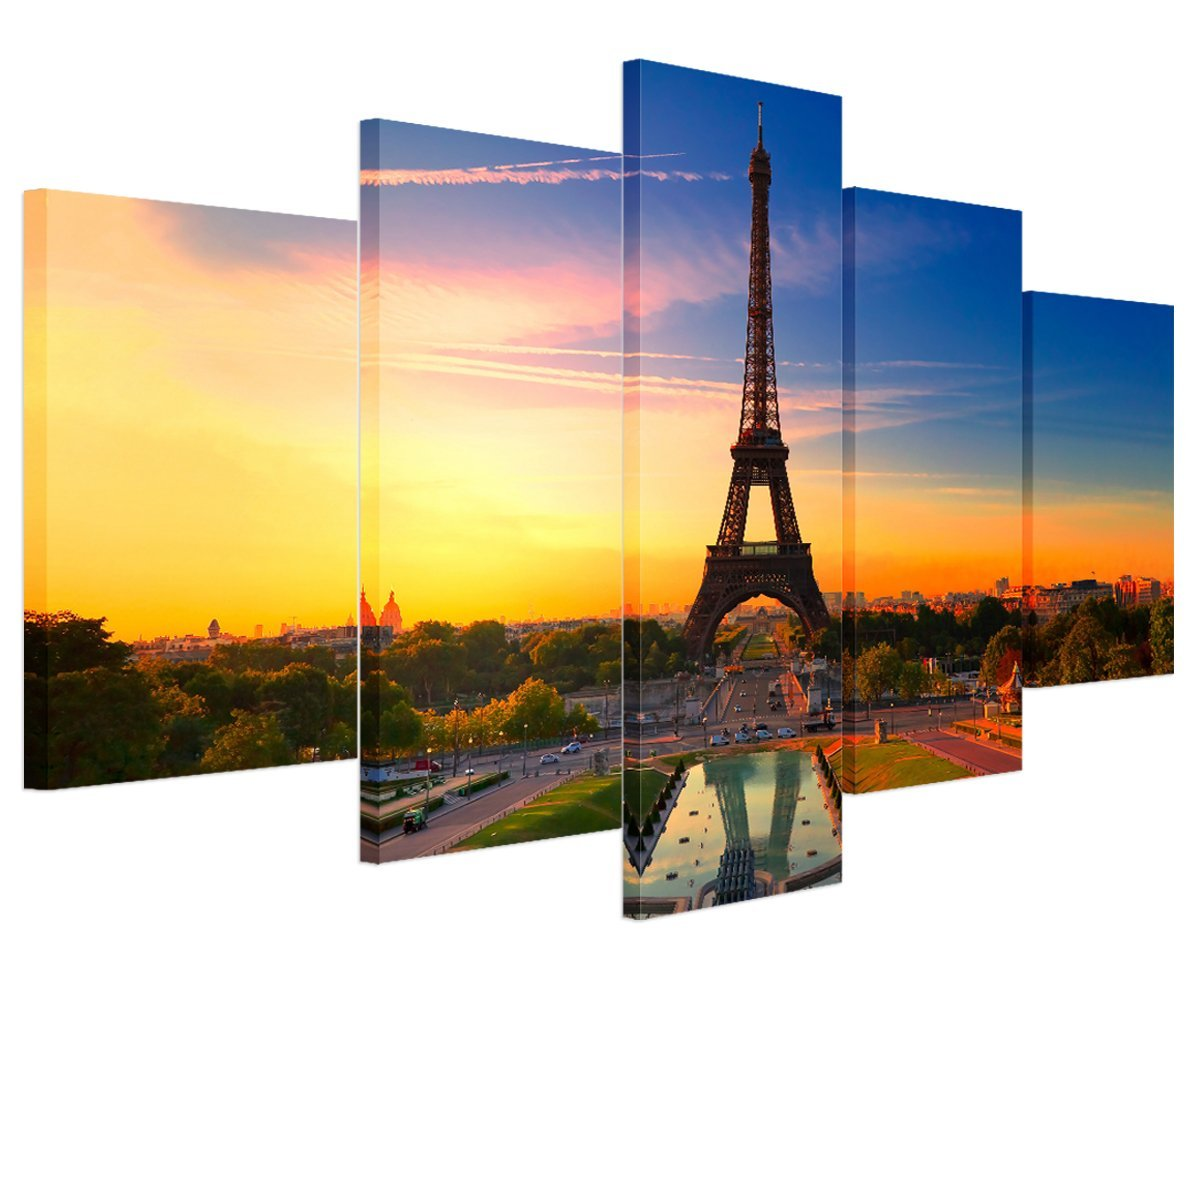 RAIN QUEEN The Eiffel Tower Oil Painting on Canvas, Large Landscape Paintings on Canvas, Hand made Portfolio Wall Art for Home Decoration (No Frame), 5 pcs/set 30*50cm*2, 30*70cm*2, 30*90cm*1